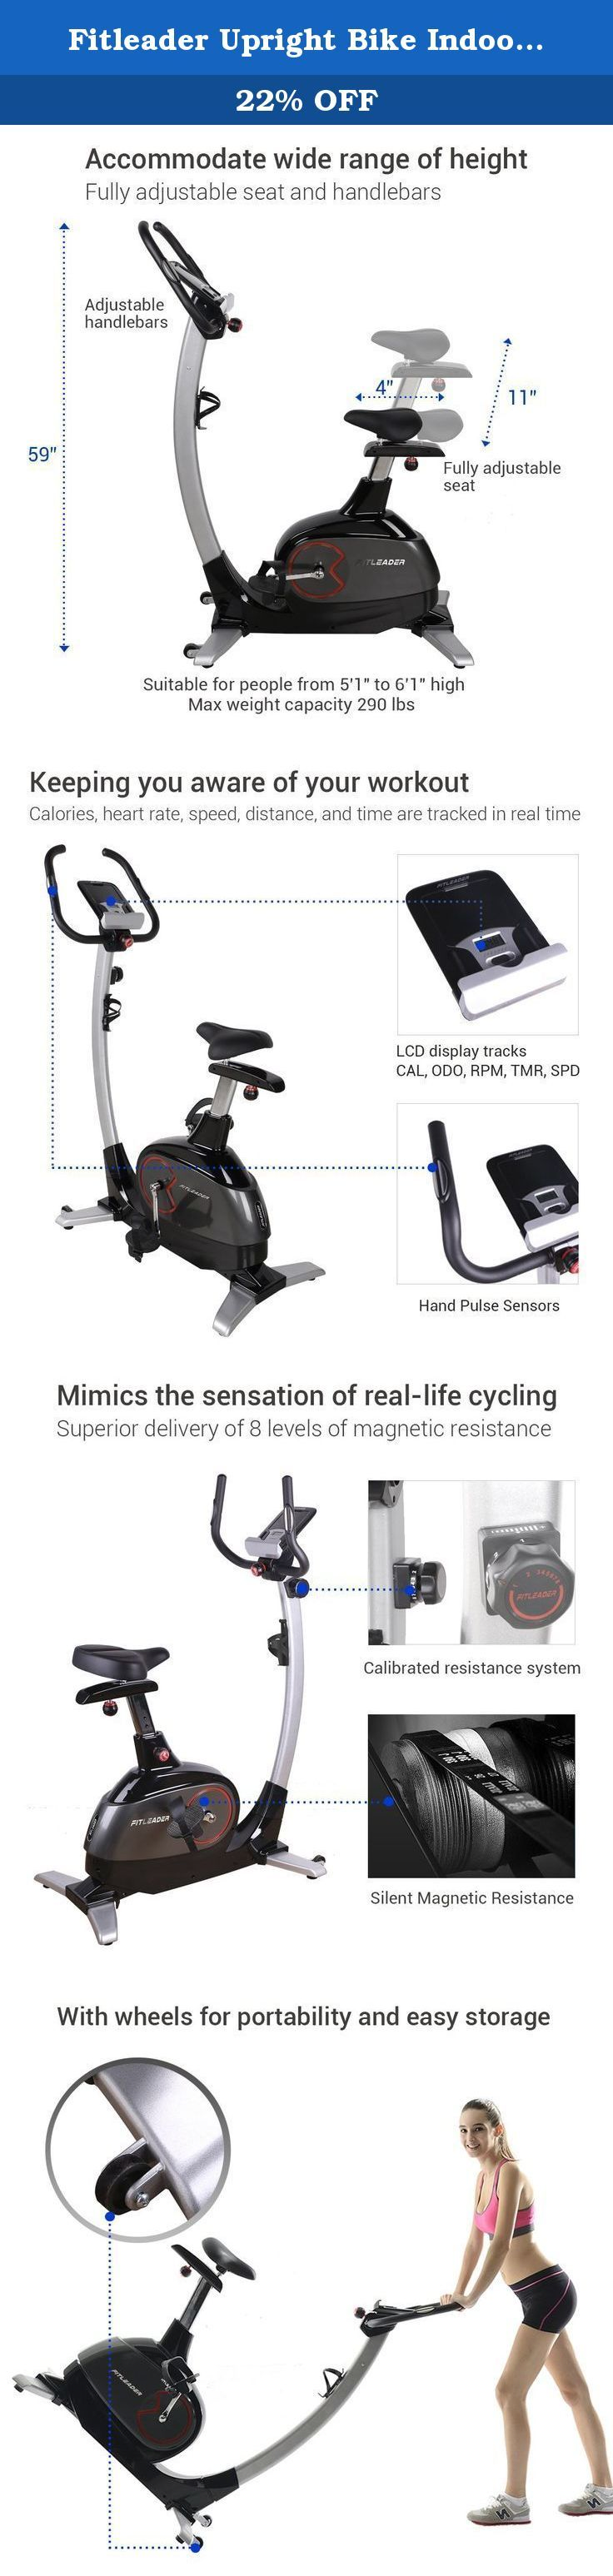 Fitleader Upright Bike Indoor Cardio Bike Magnetic Resistance Stationary Cycling Machine. Description: Why Choose a Fitleader Upright Bike? Are you still trying to find the best stationary bike for your home gym? If so, the Fitleader UF2 upright bike is the high quality, competitively priced exercise bike you've been looking for! With its eight resistance levels and progress readouts for speed, RPM, time, distance, watts, calories and pulse, the UF2 is exactly what you need to achieve…